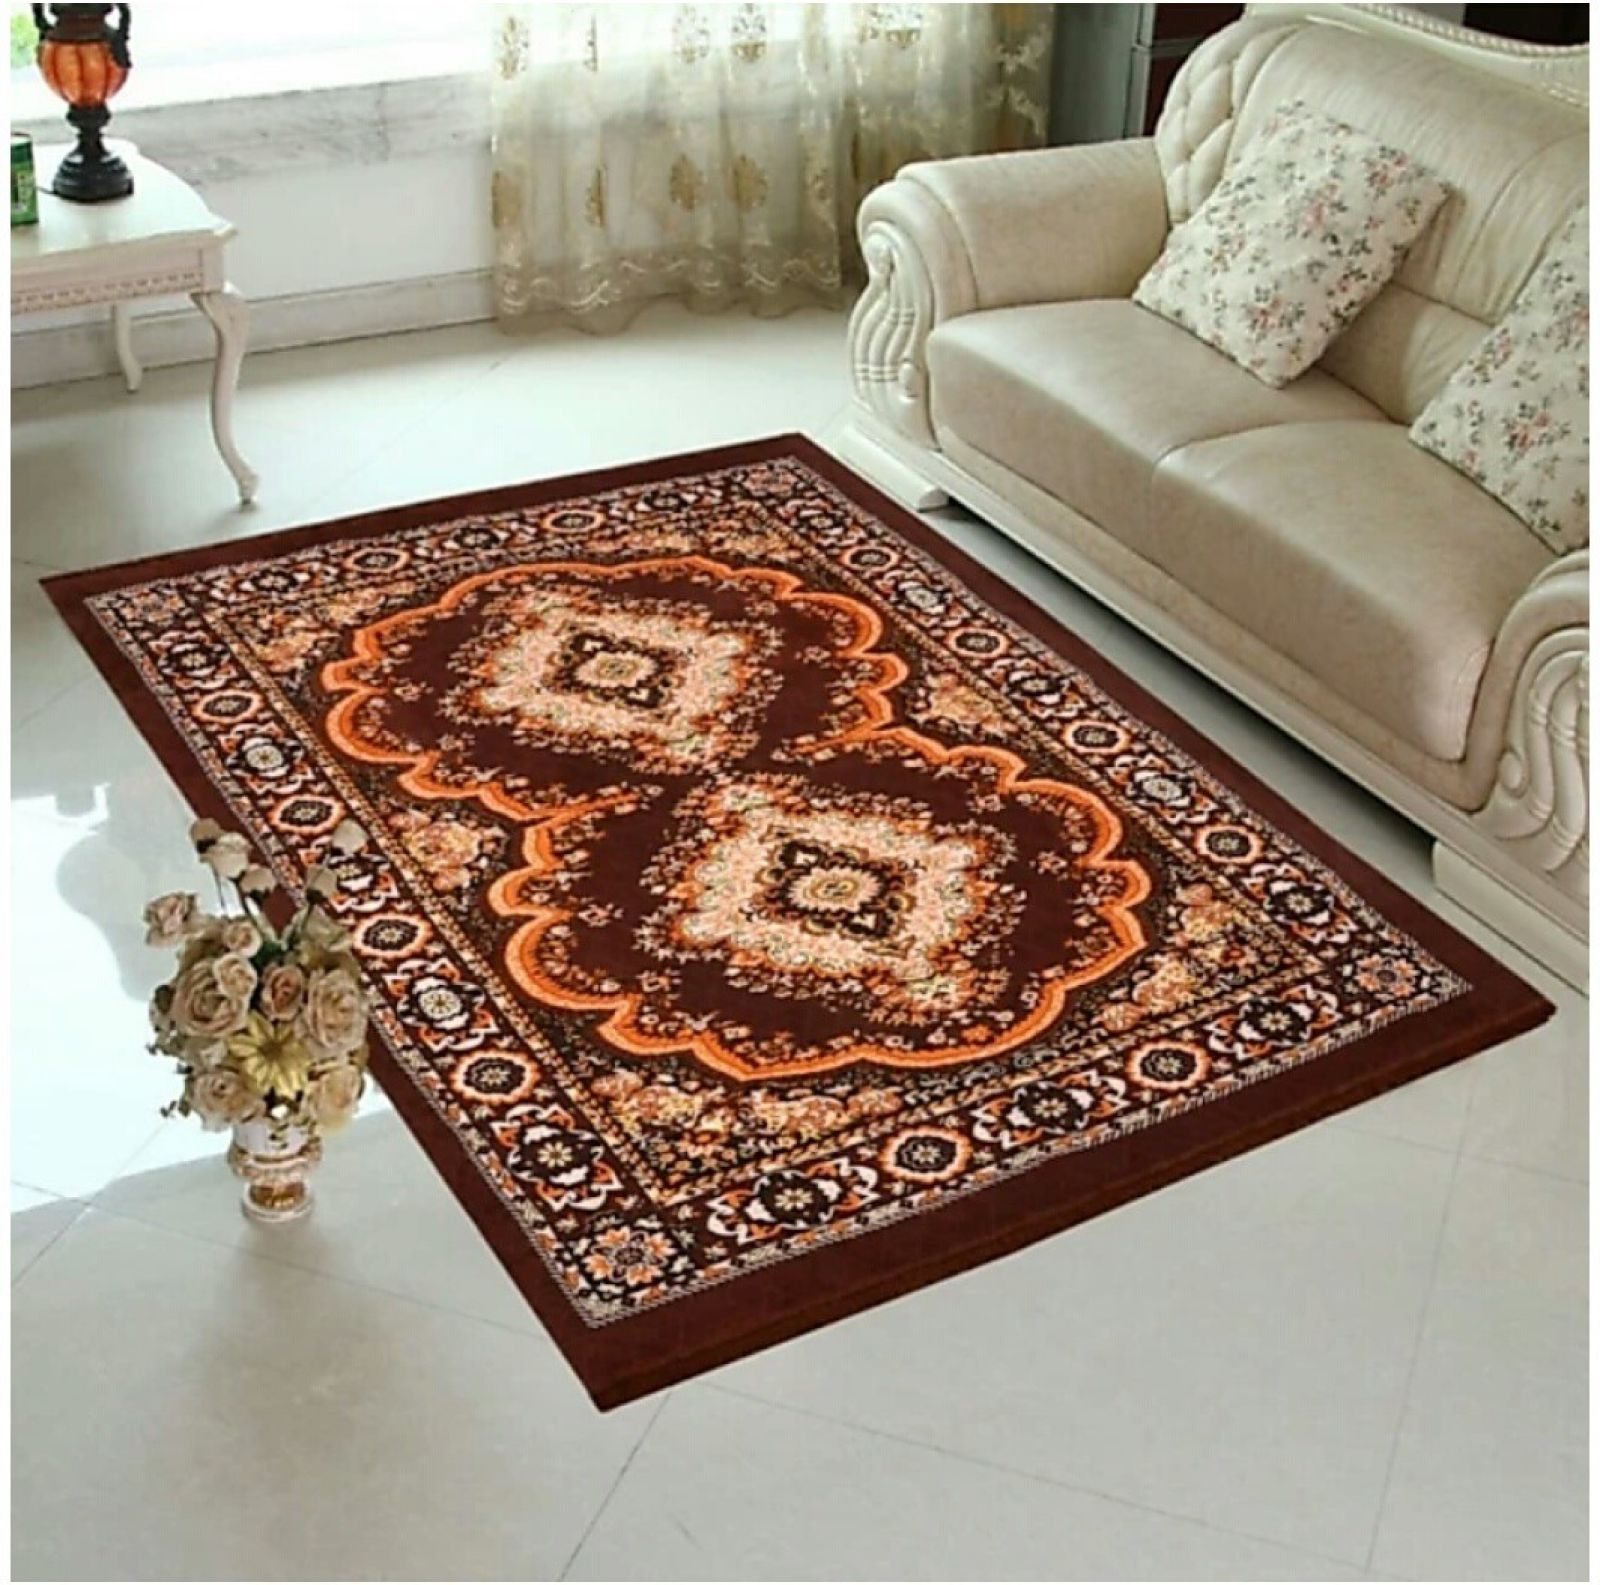 Carpets Up to 90% off from Just @Rs.190 only Flipkart